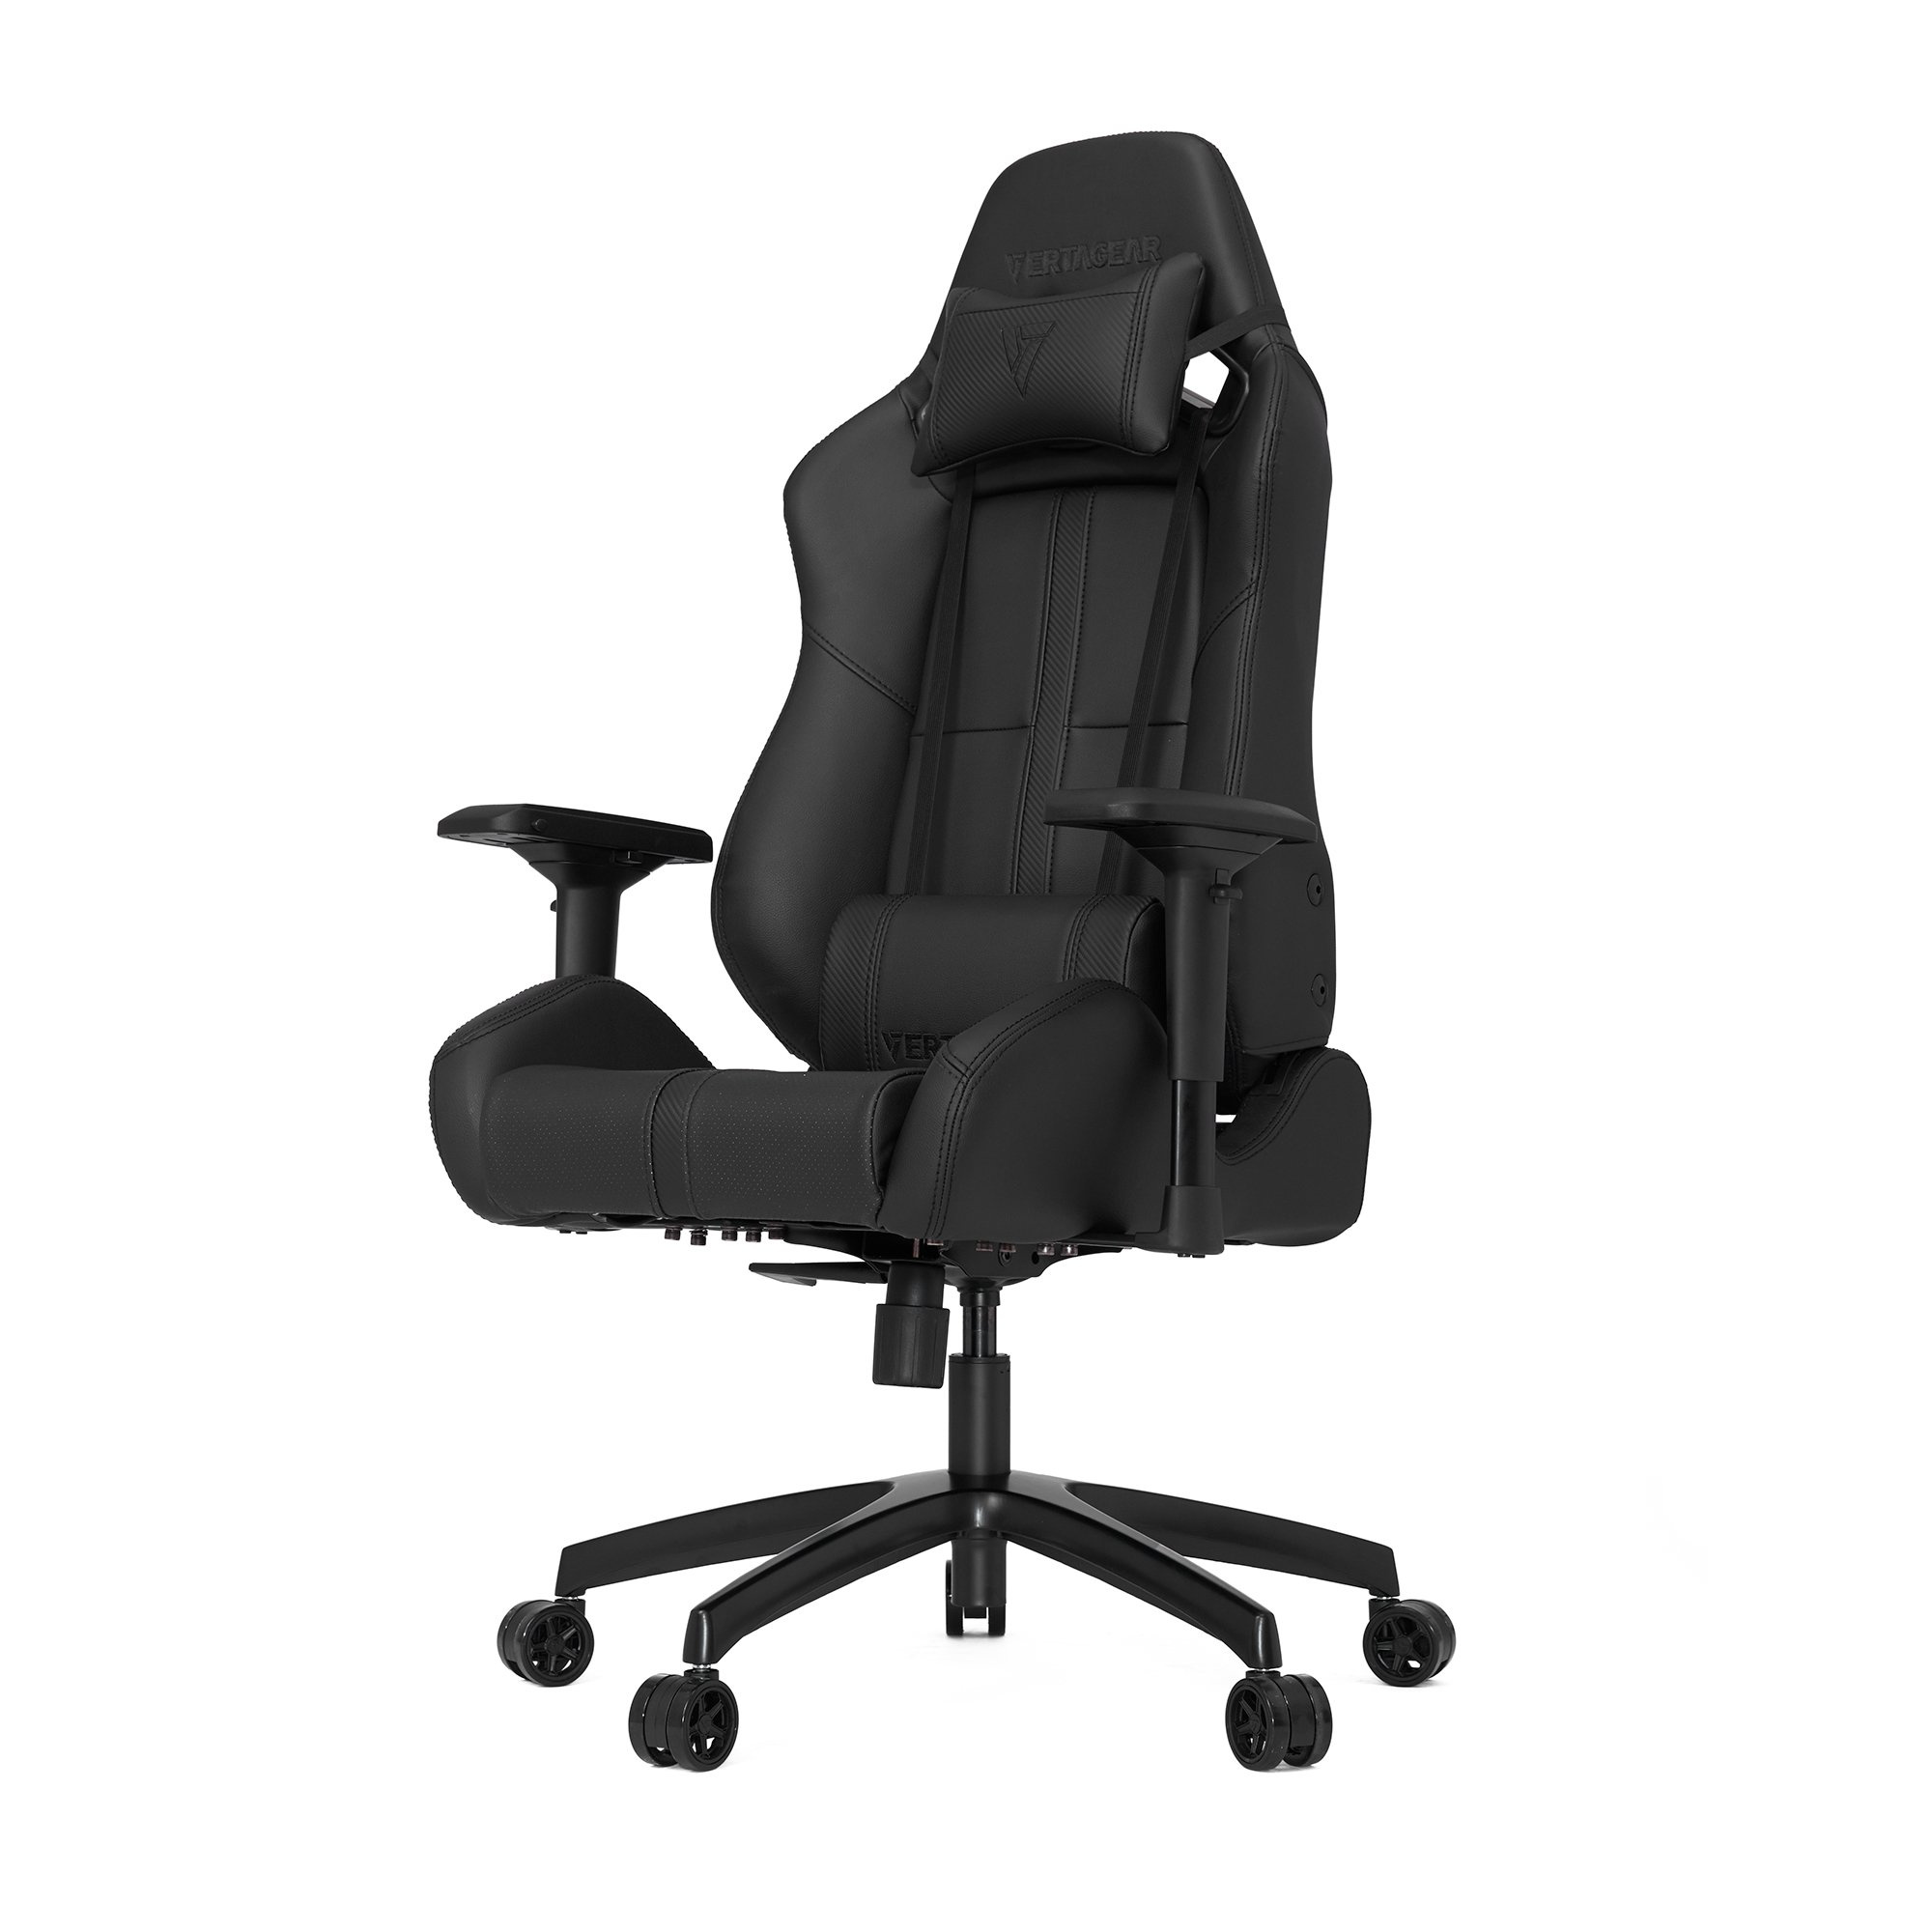 Vertagear S-Line 5000 Gaming Chair, Large, Black/Carbon by VERTAGEAR